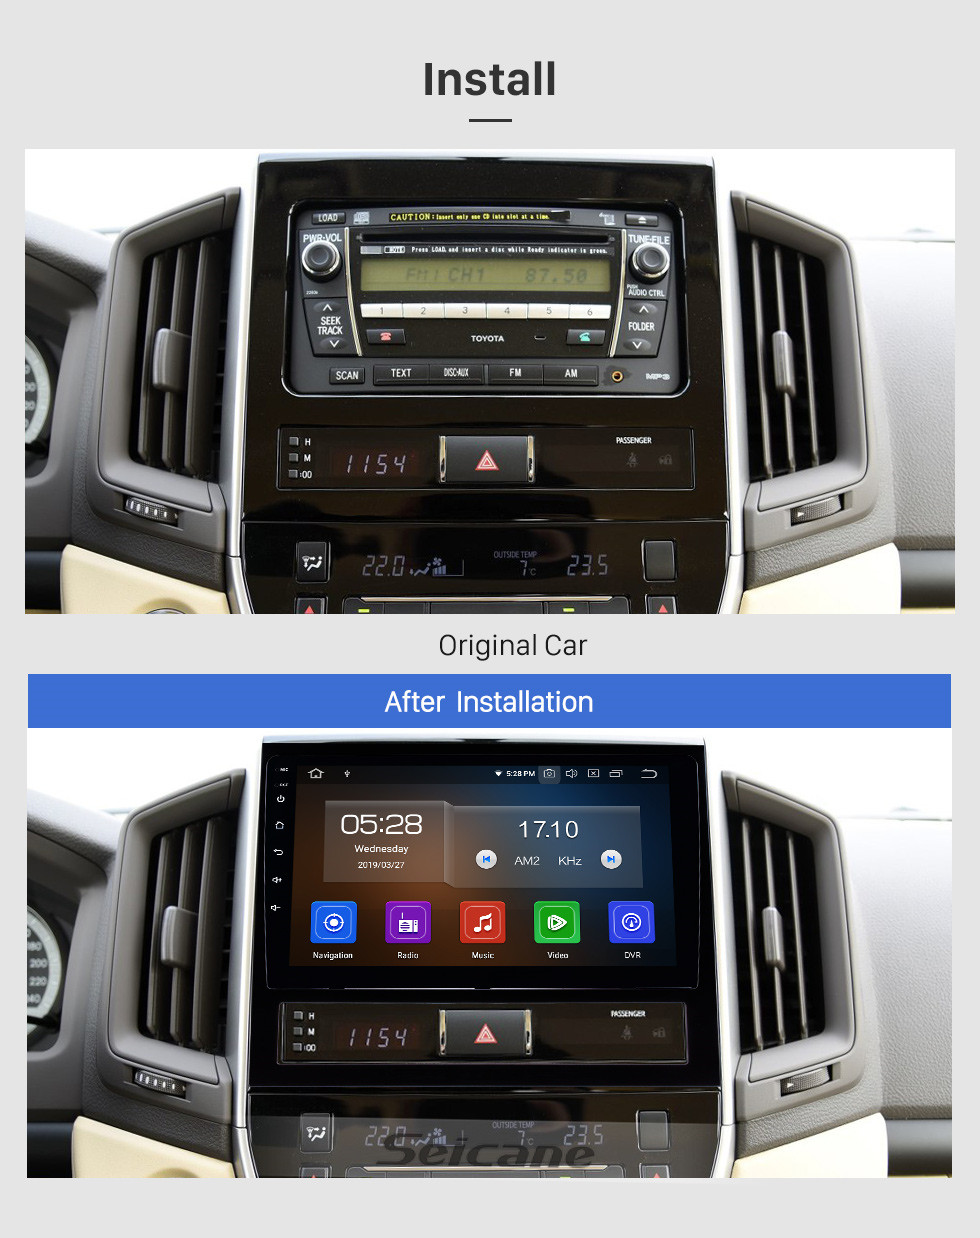 Seicane 9 inch 2015 2016 2017 2018 Toyota Land cruiser HD Touchscreen Android 10.0 Radio GPS Navigation System with Bluetooth Mirror Link OBD2 4G WiFi AUX Steering Wheel Control Backup Camera